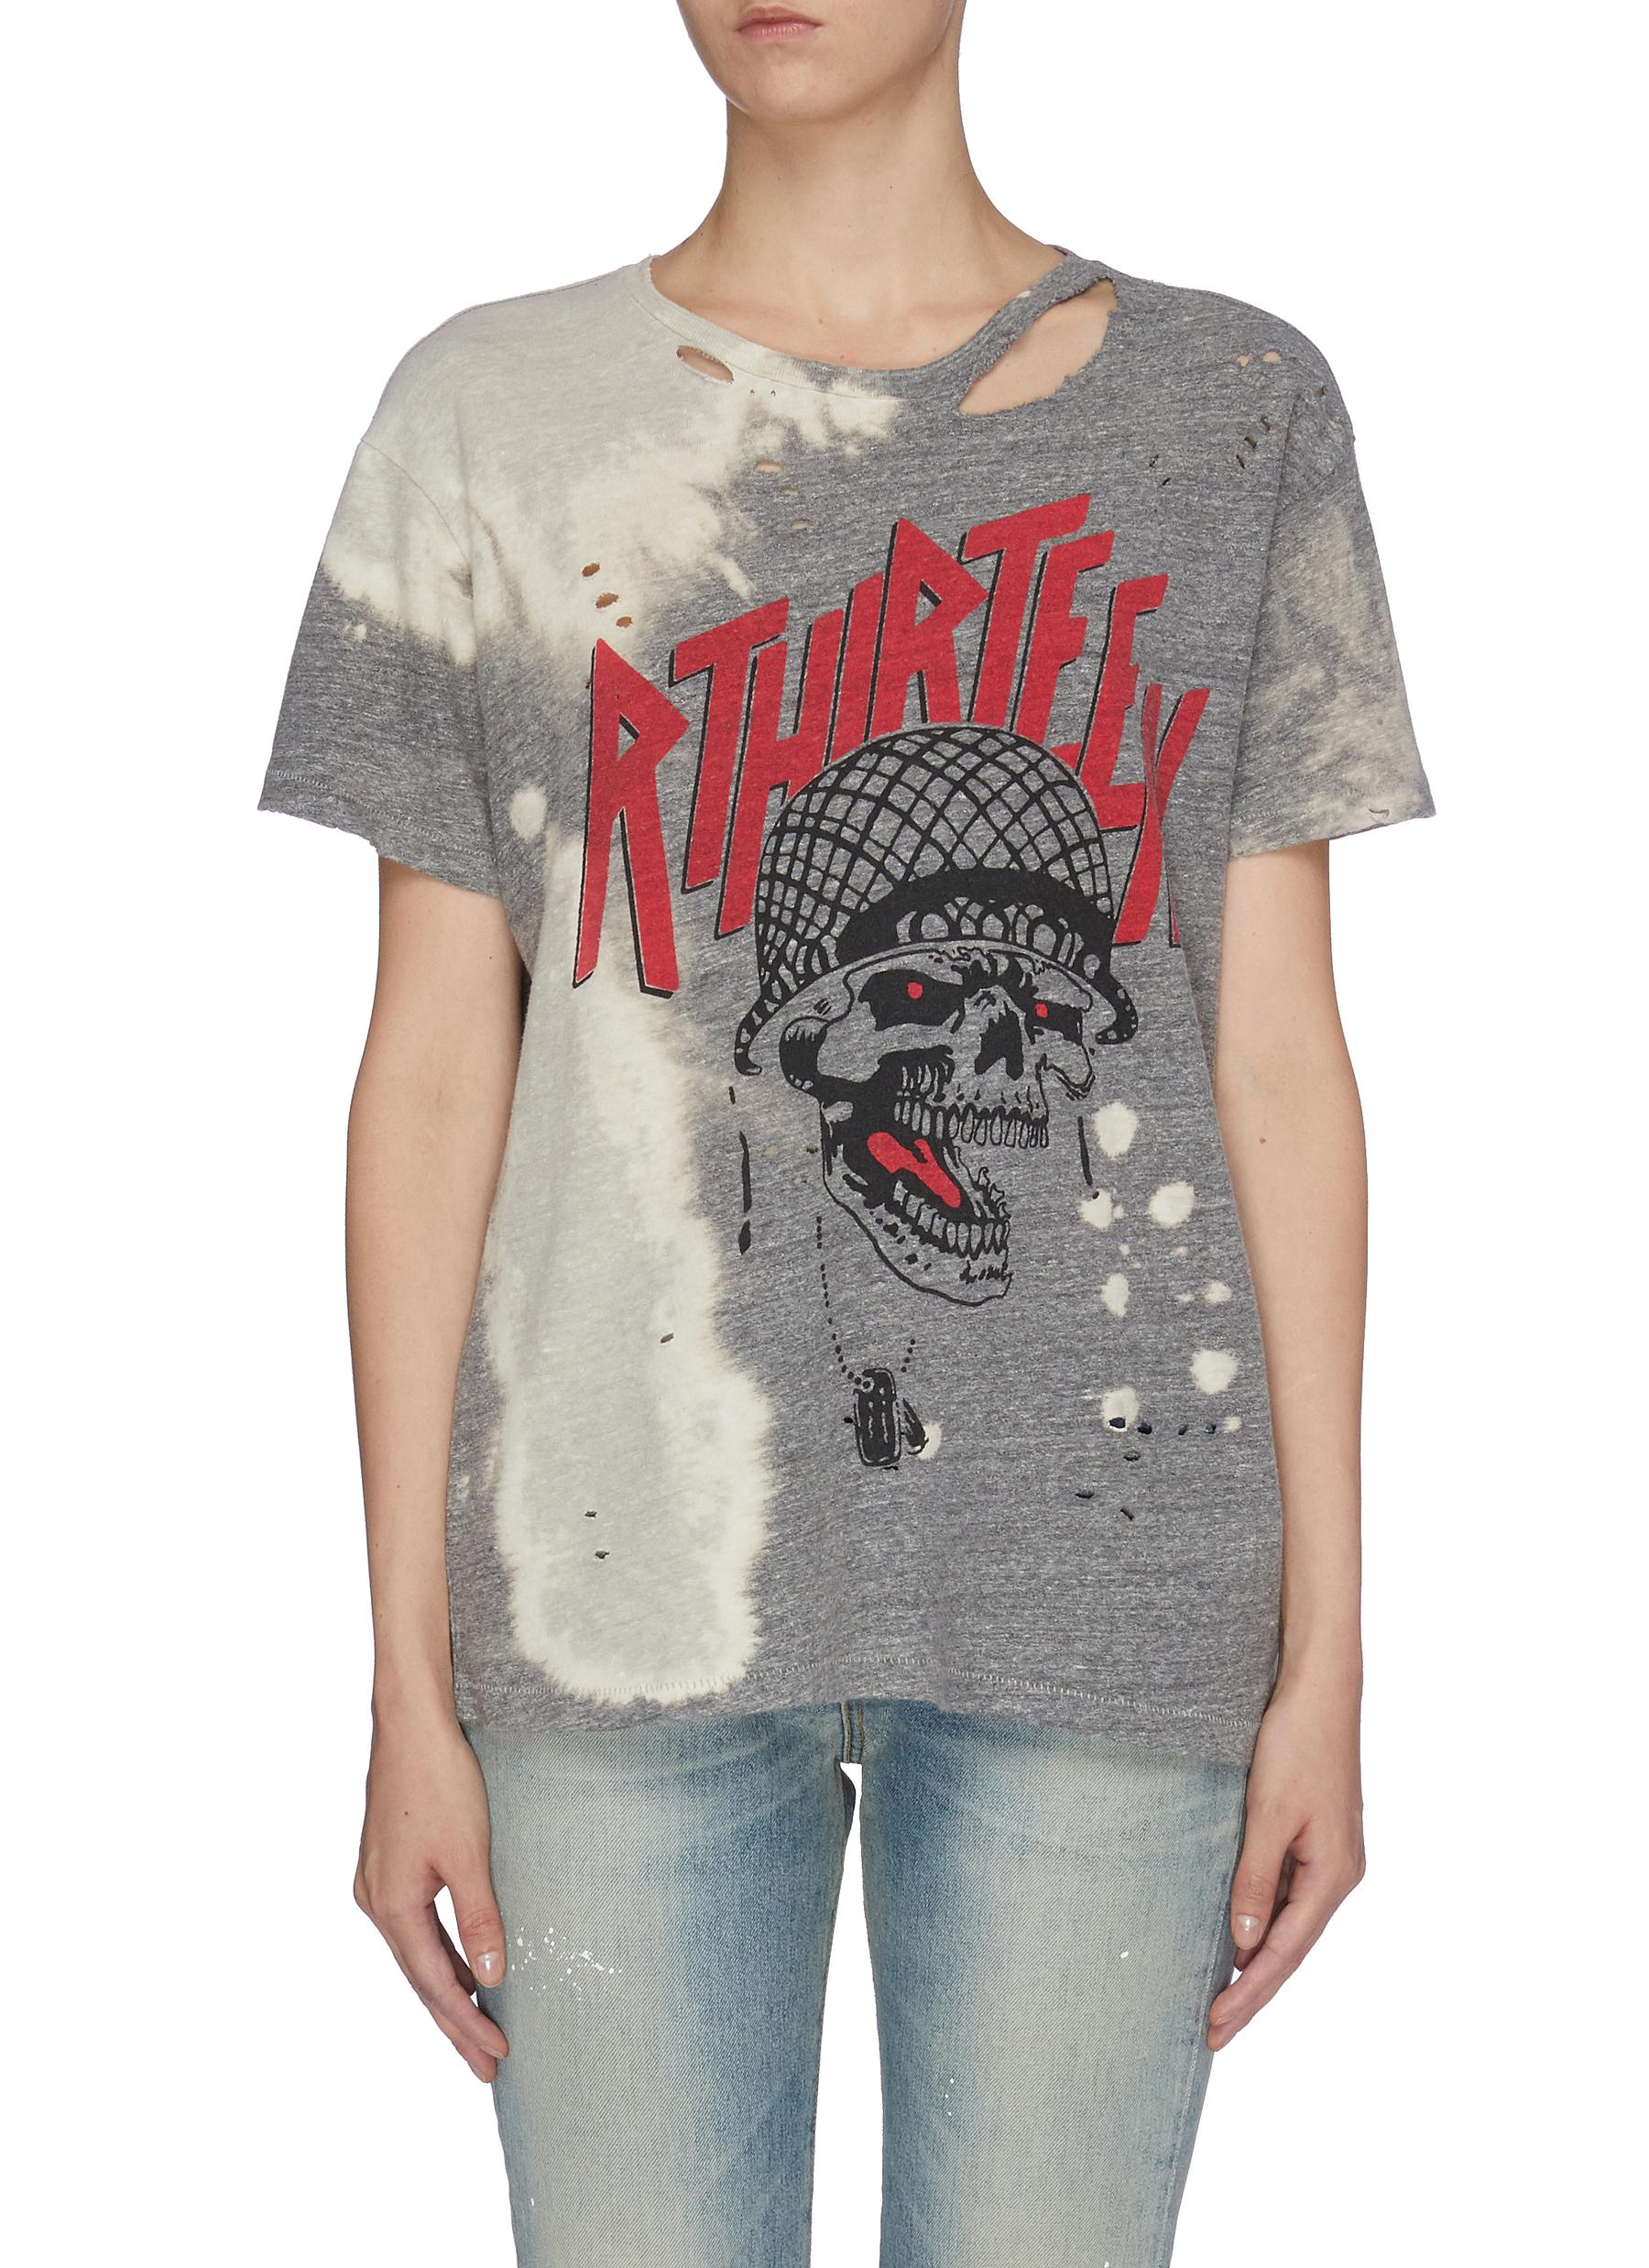 Battle Punk Boy distressed graphic print T-shirt by R13